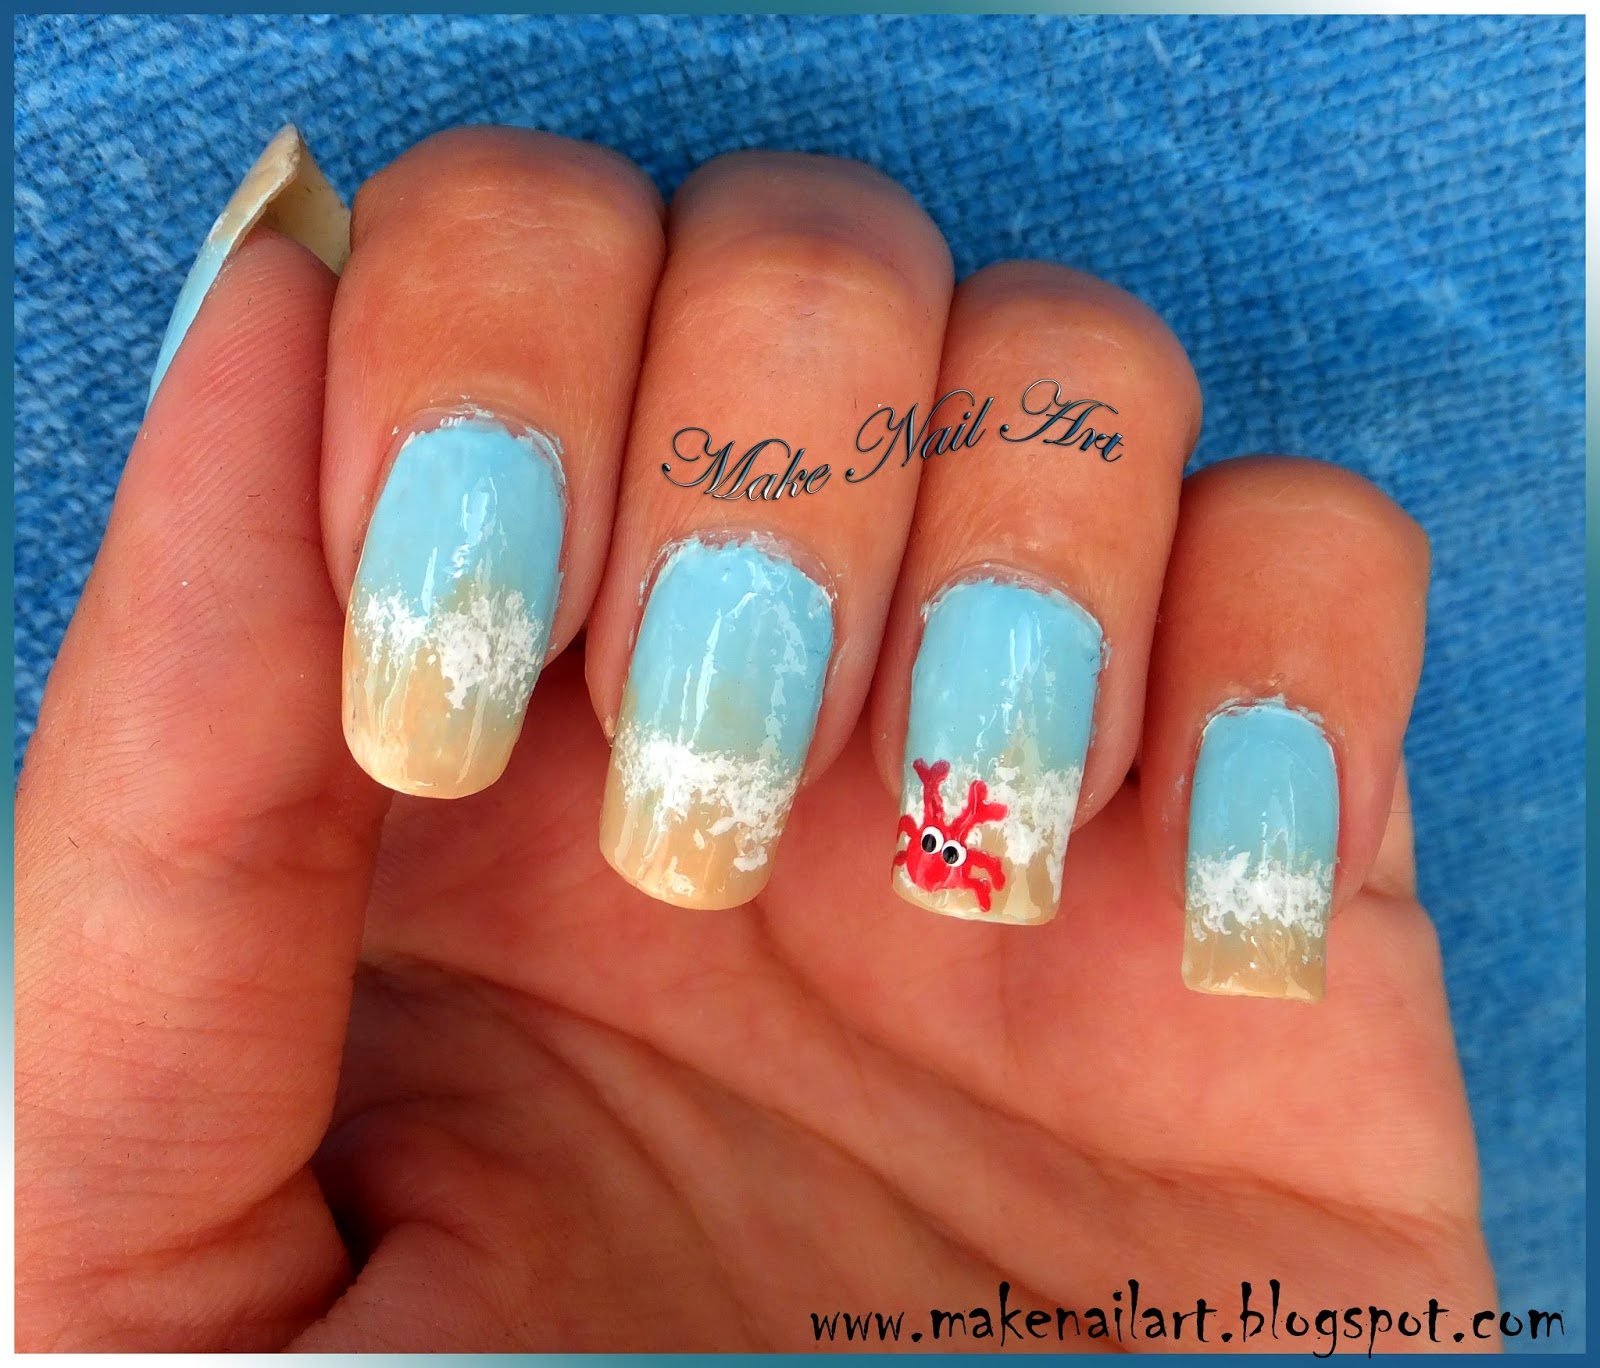 Make nail art easy beach nails with a crab nail art tutorial easy beach nails with a crab nail art tutorial prinsesfo Gallery